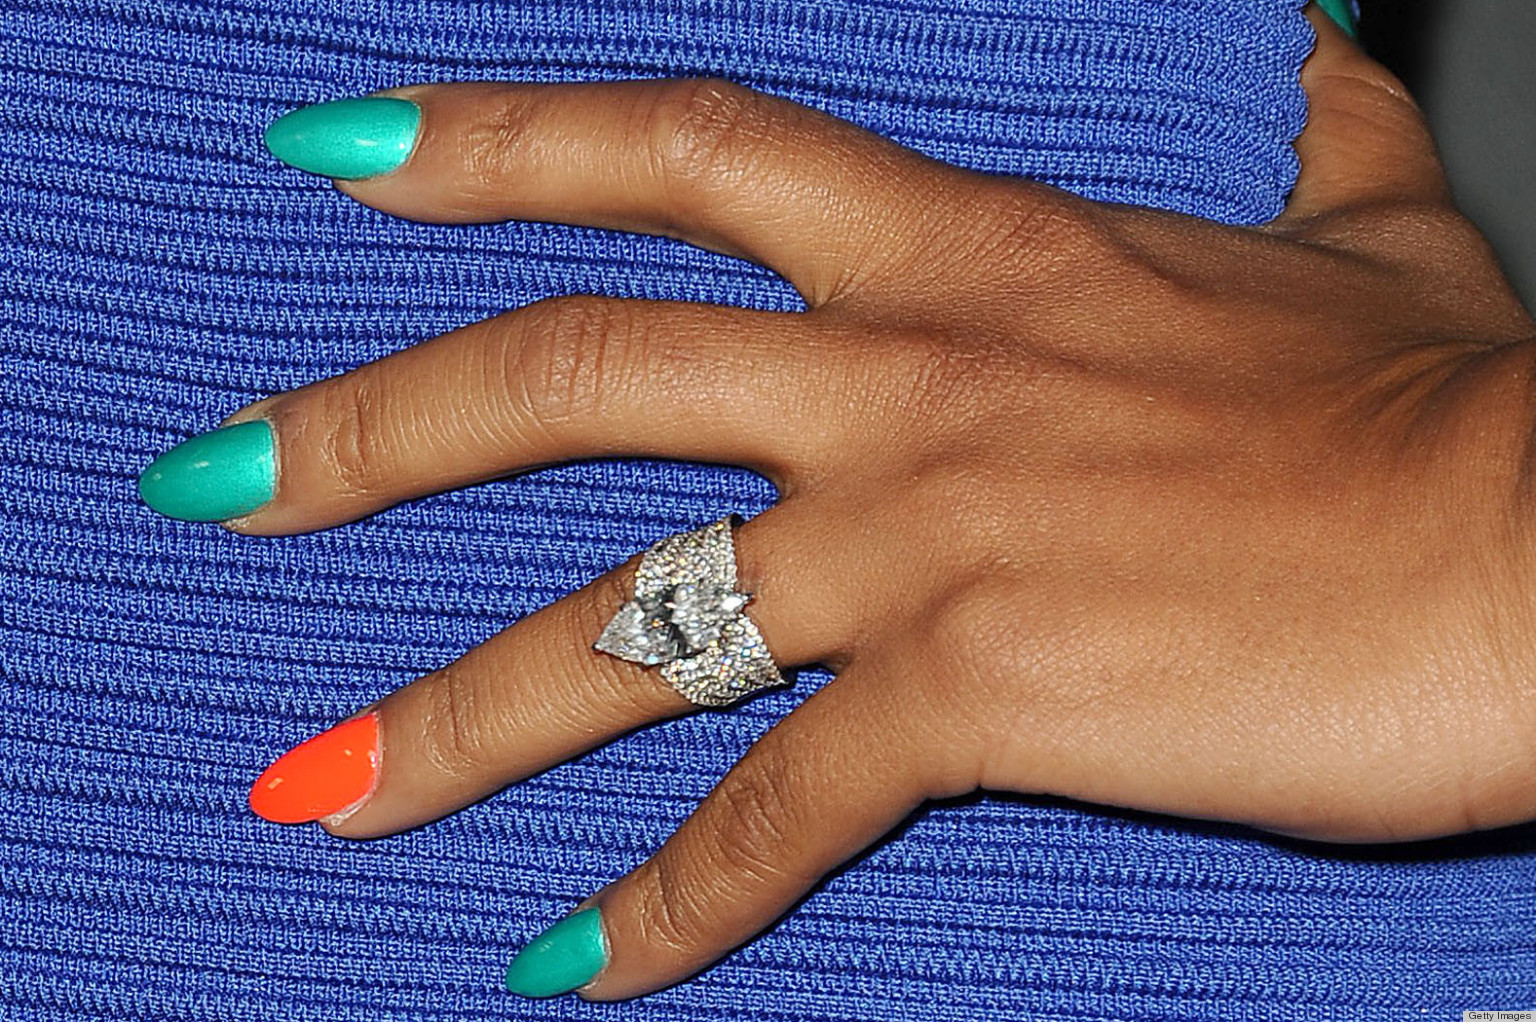 The Best Nail Polish Colors For Tanned Skin (PHOTOS) | HuffPost